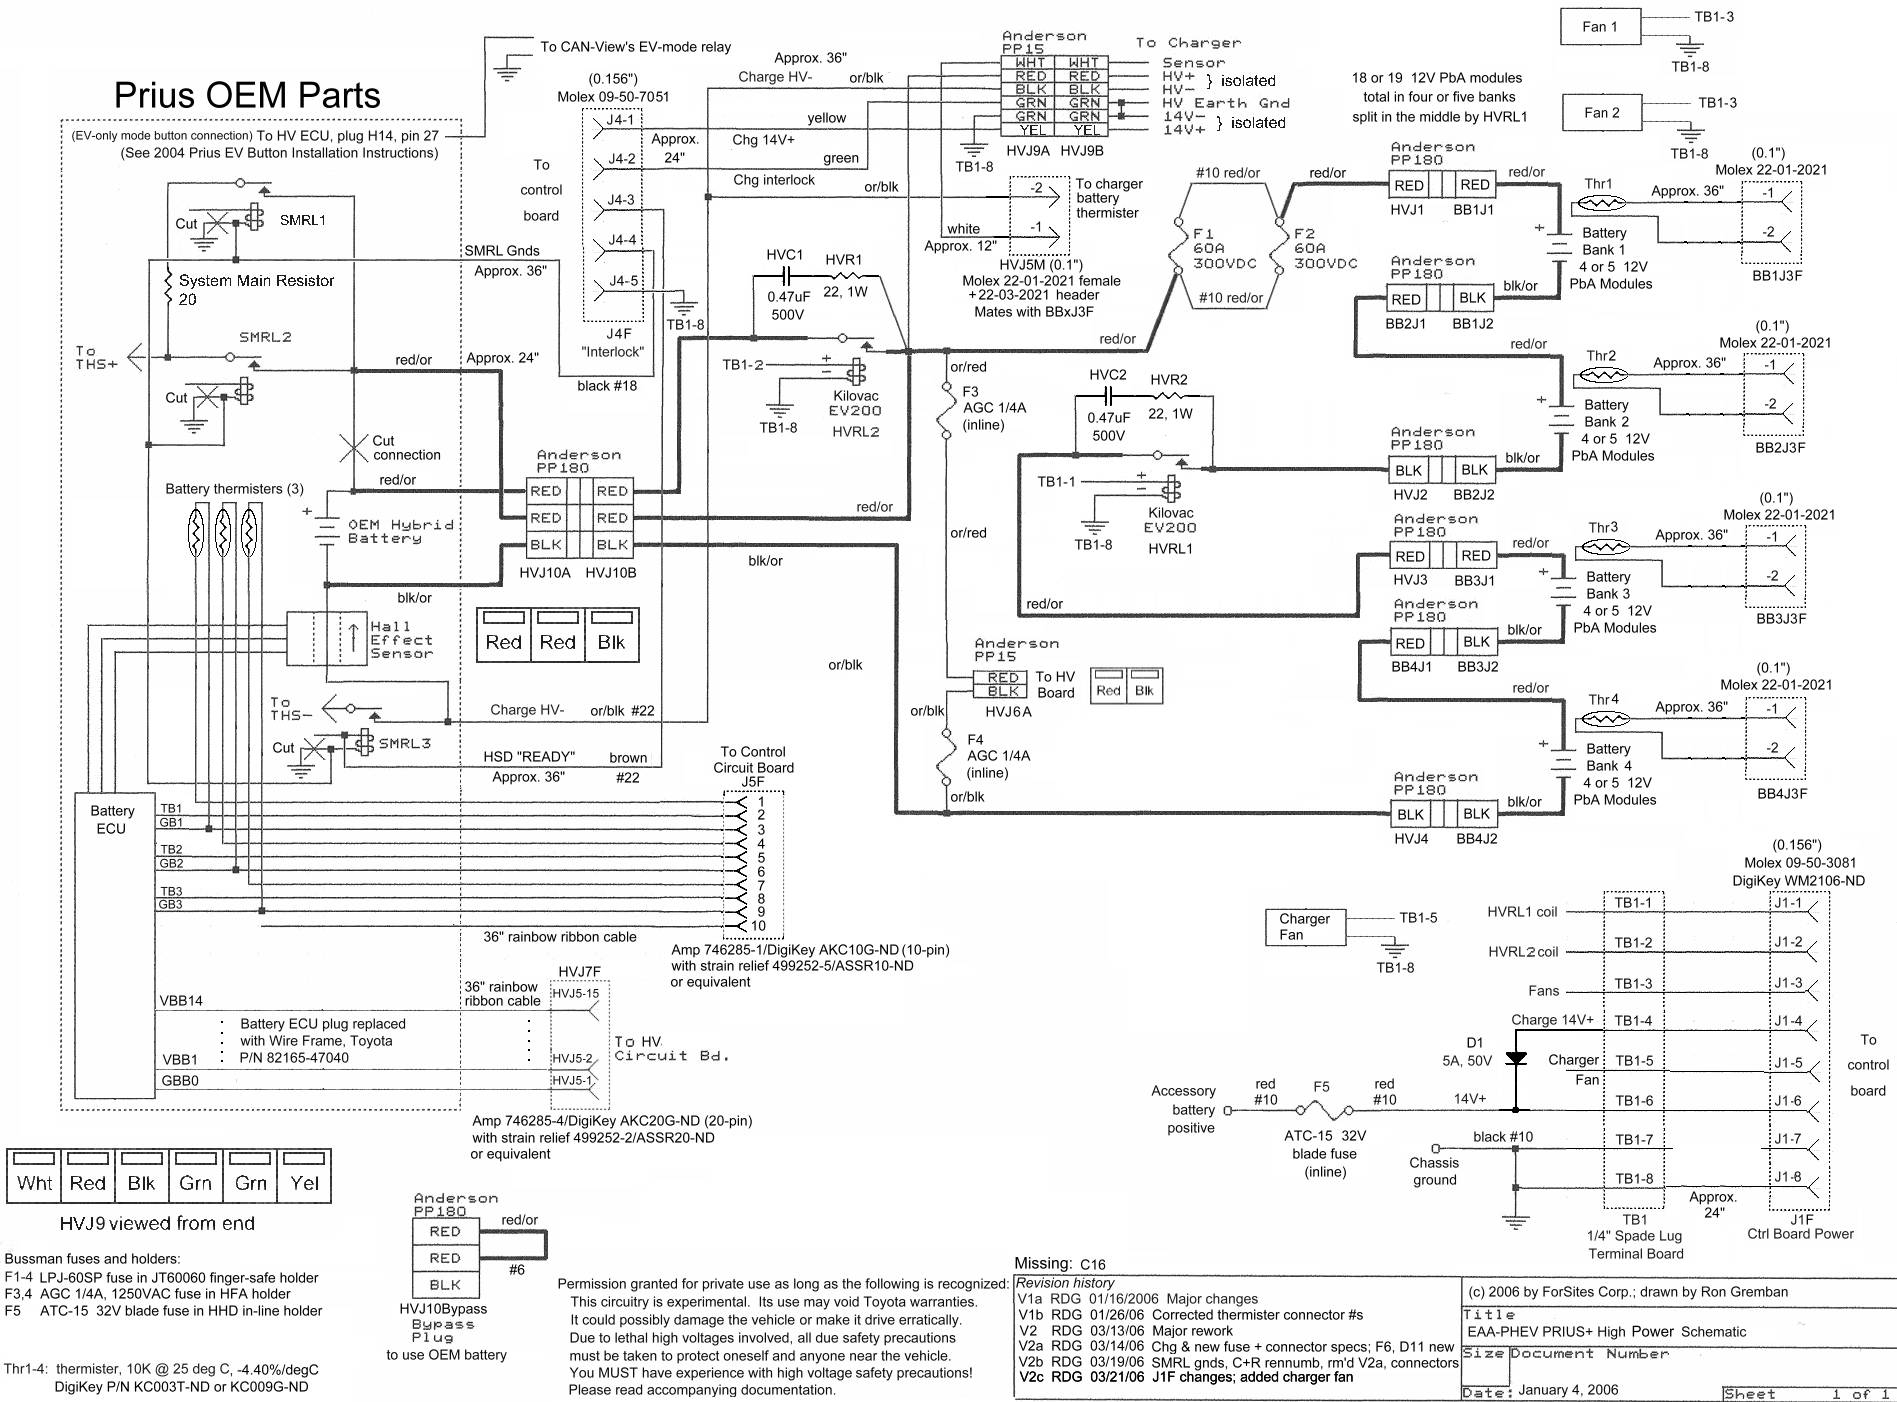 2007 Toyota Prius Wiring Diagram Gallery Sample Diagrams Free Download Pdf Beautiful Jack Dc Power